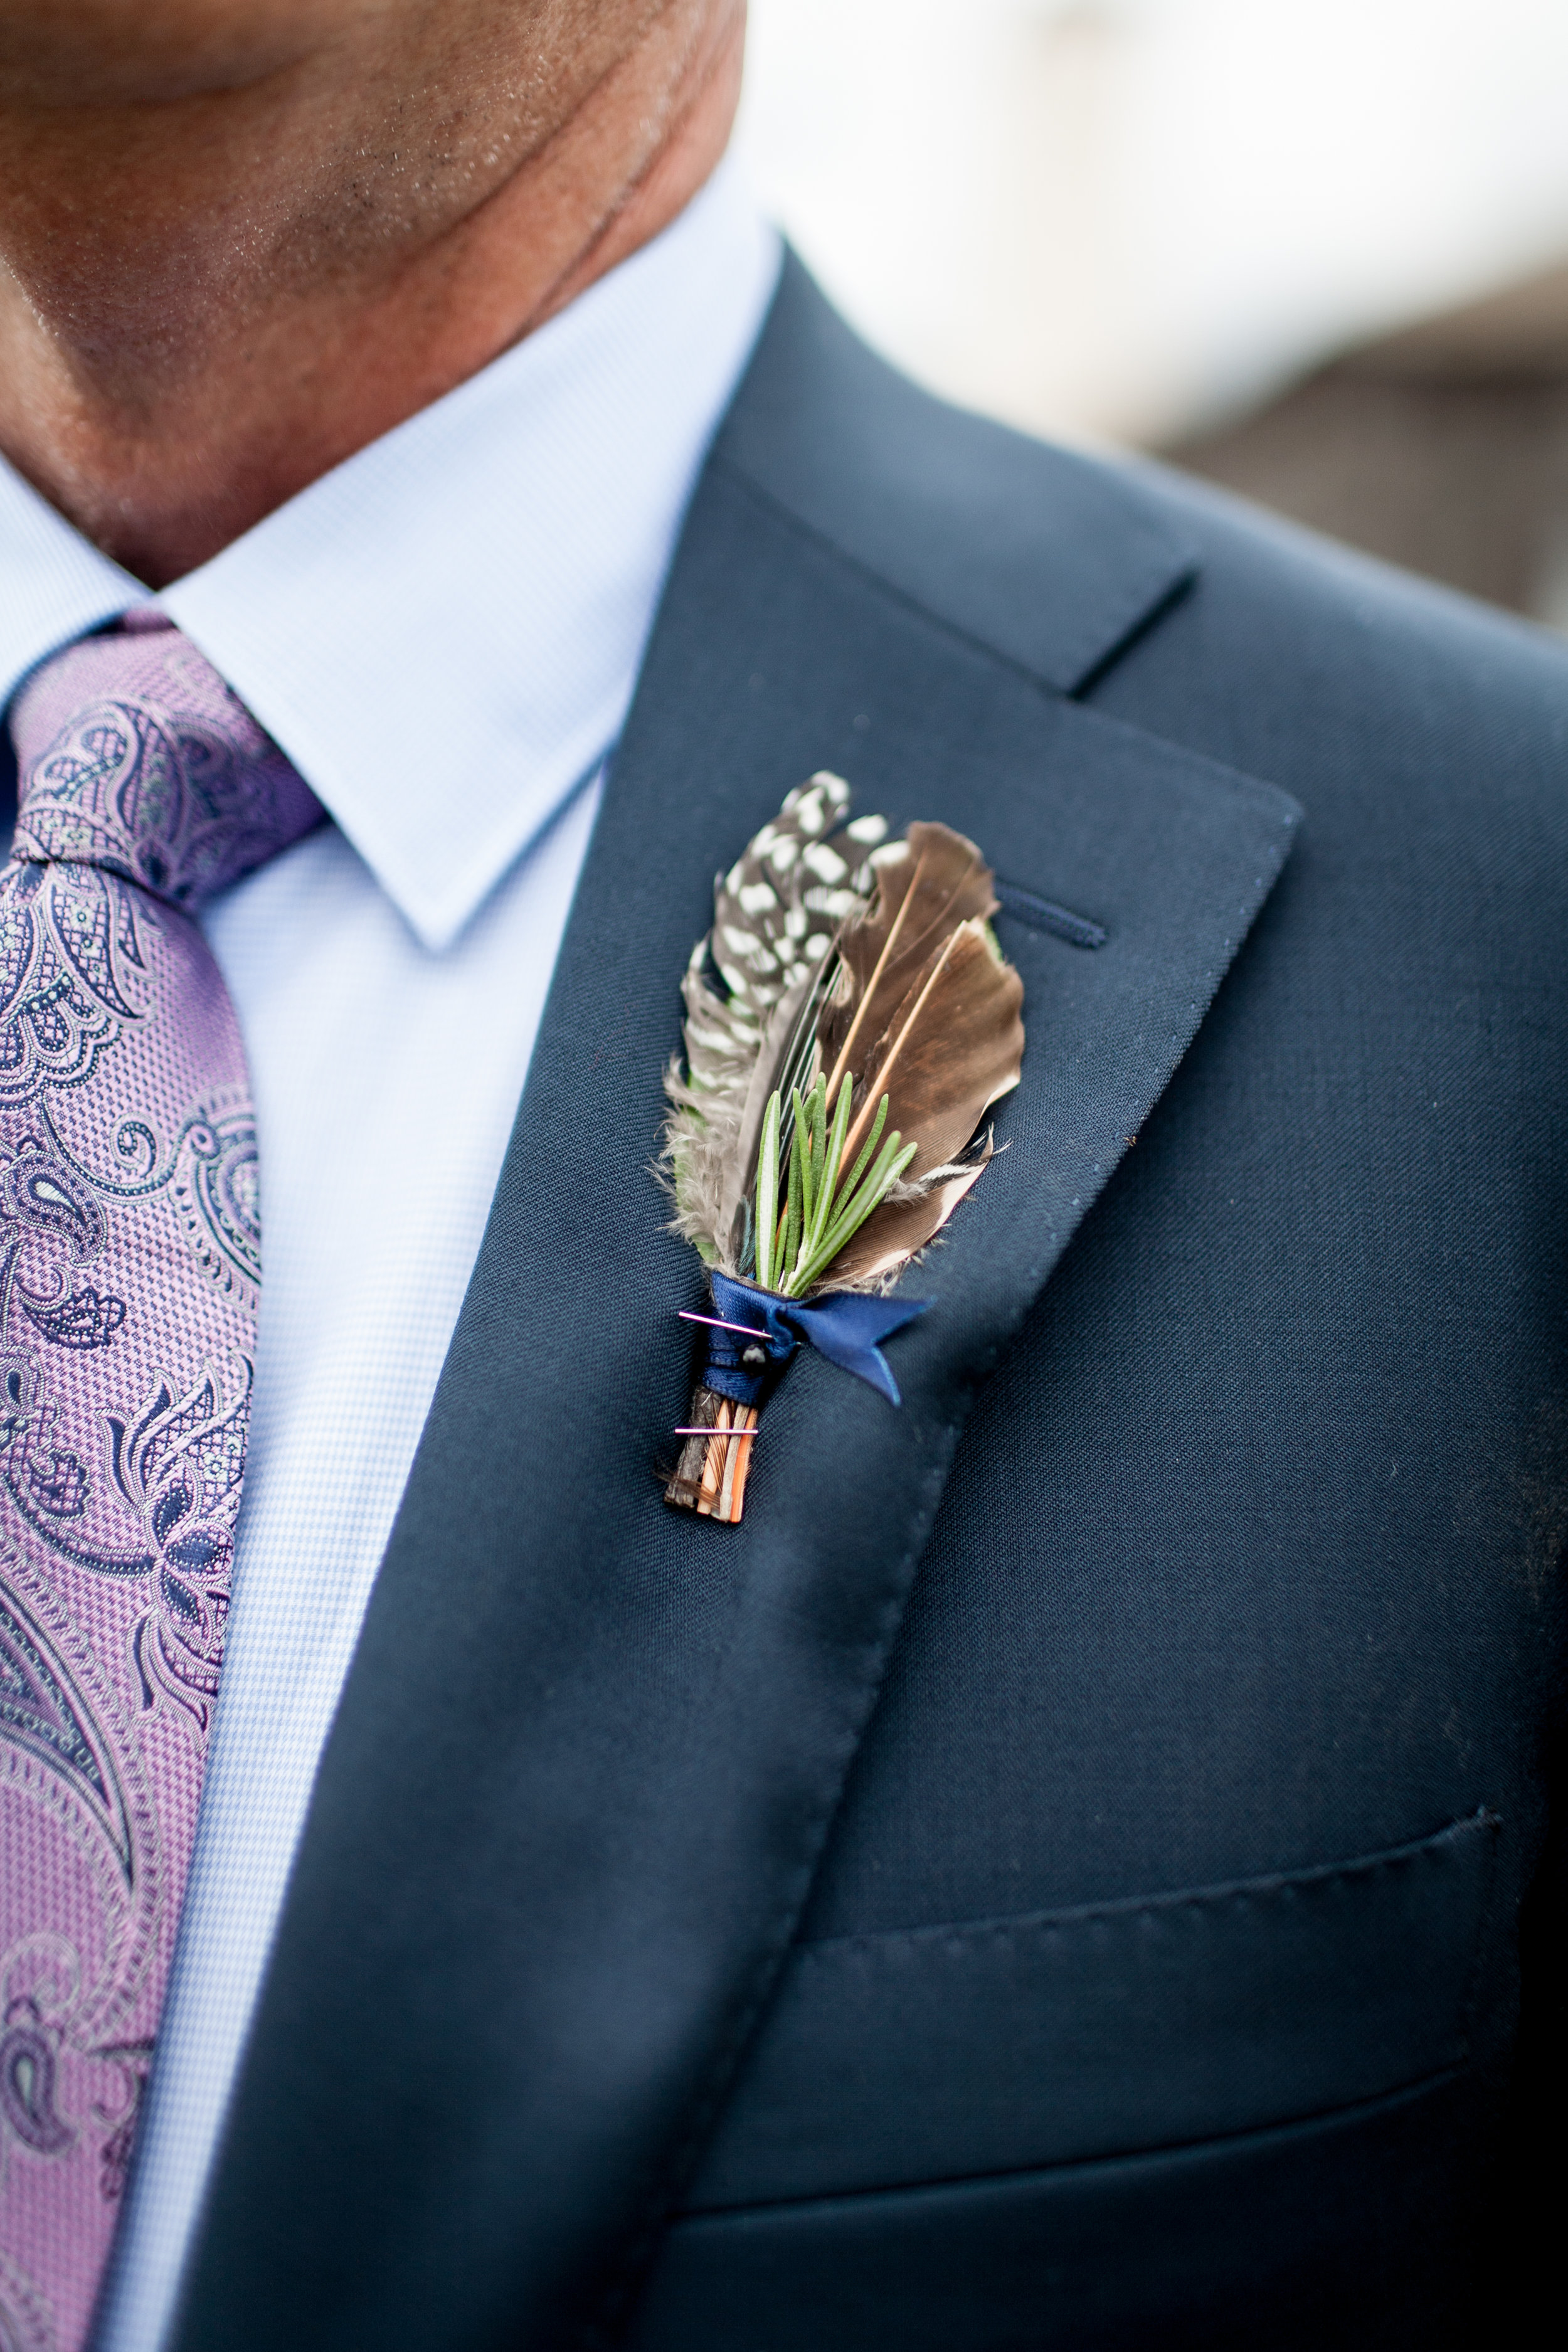 Hana Floral Design in Mystic, CT. Brookelyn Photography